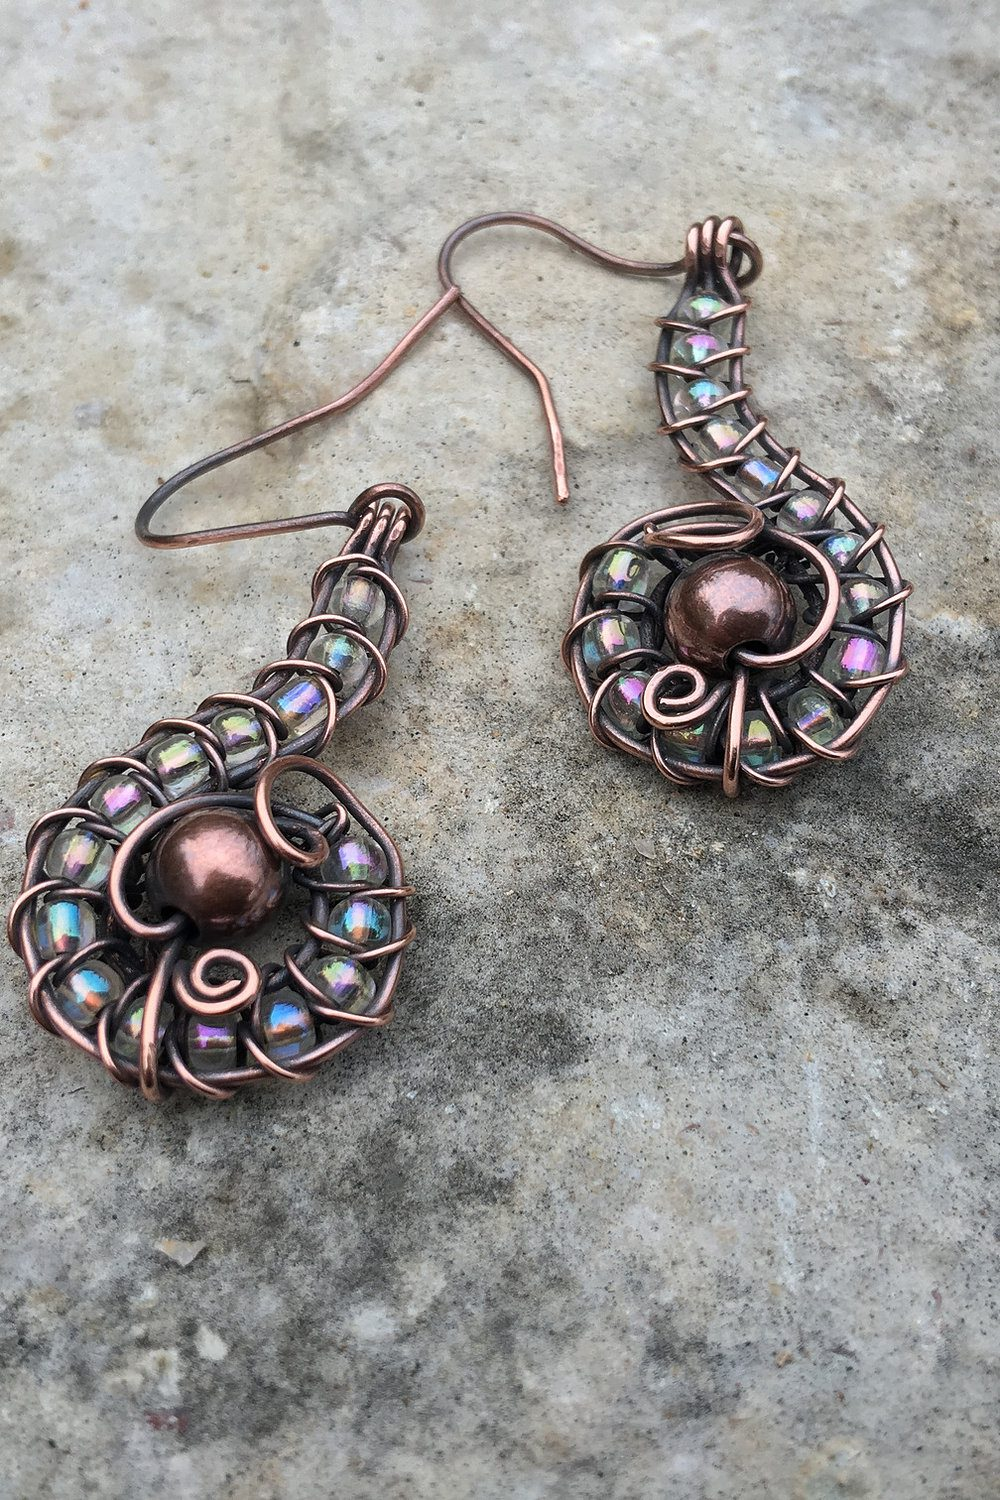 copper earrings with iridescent glass beads - glass gemstones